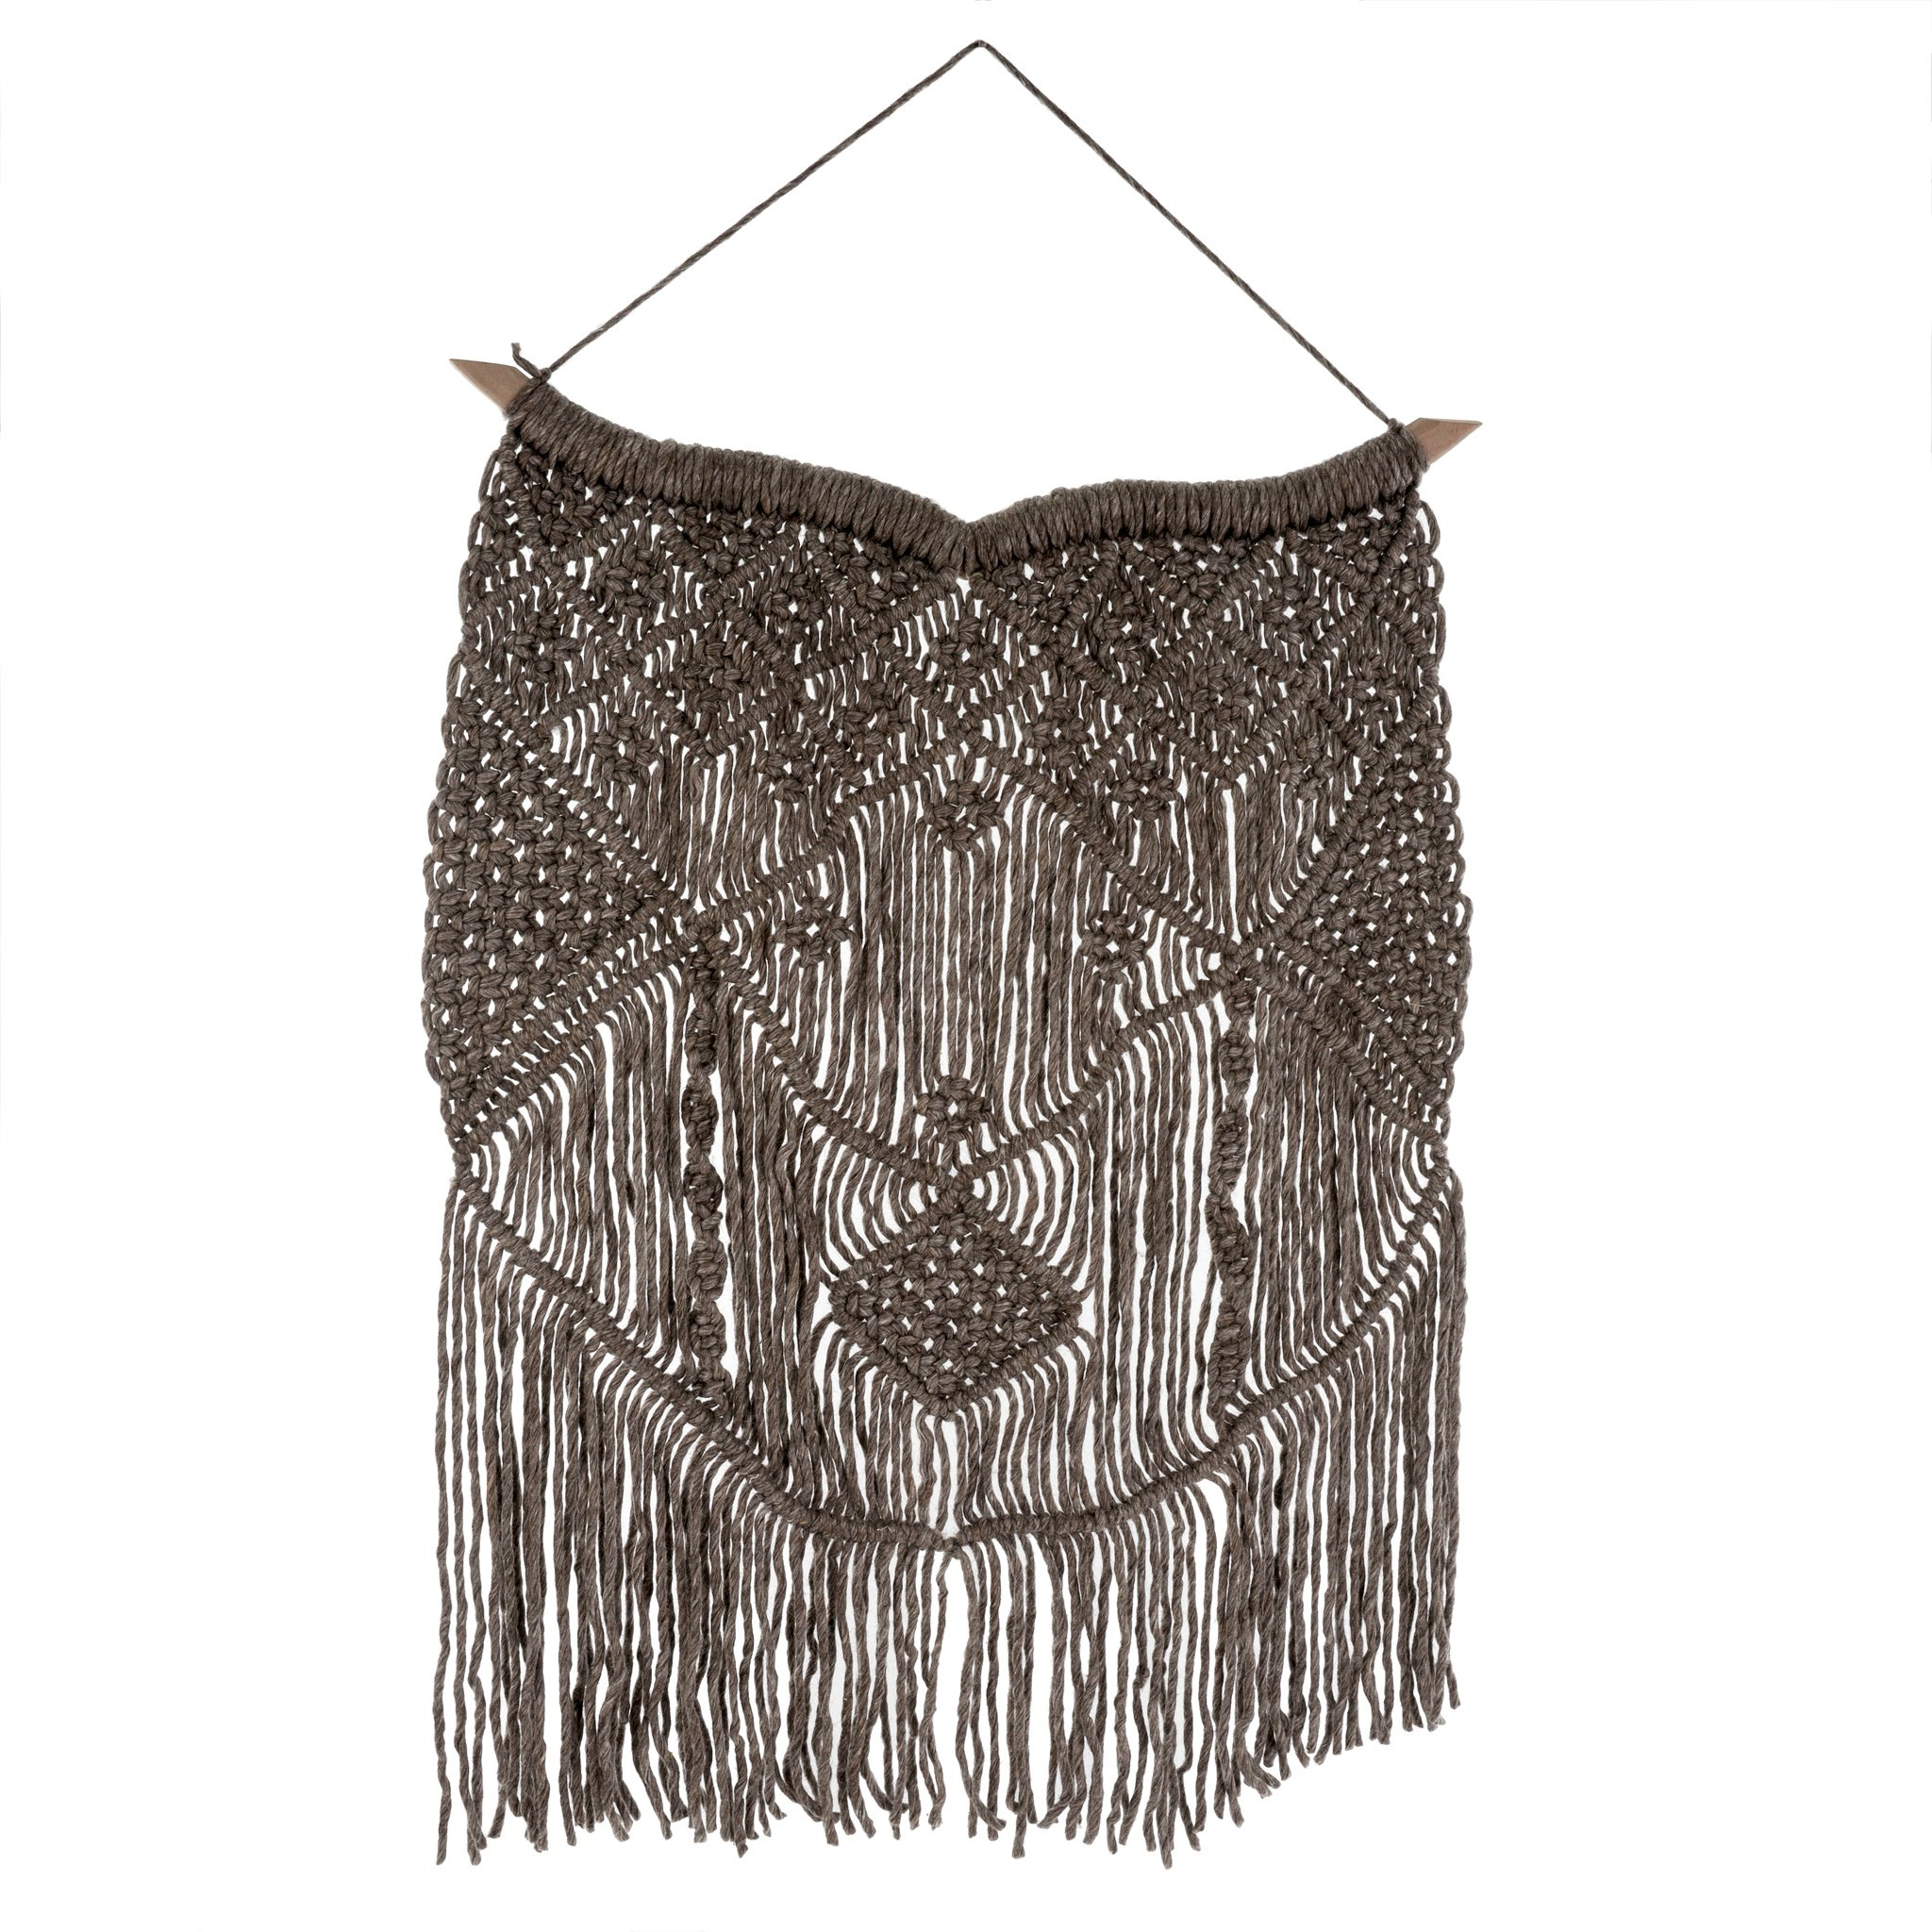 Wool Macrame Wall Hanging in Grey, Amanda's House Of Elegance  (Special Order Only)   ($86.95)